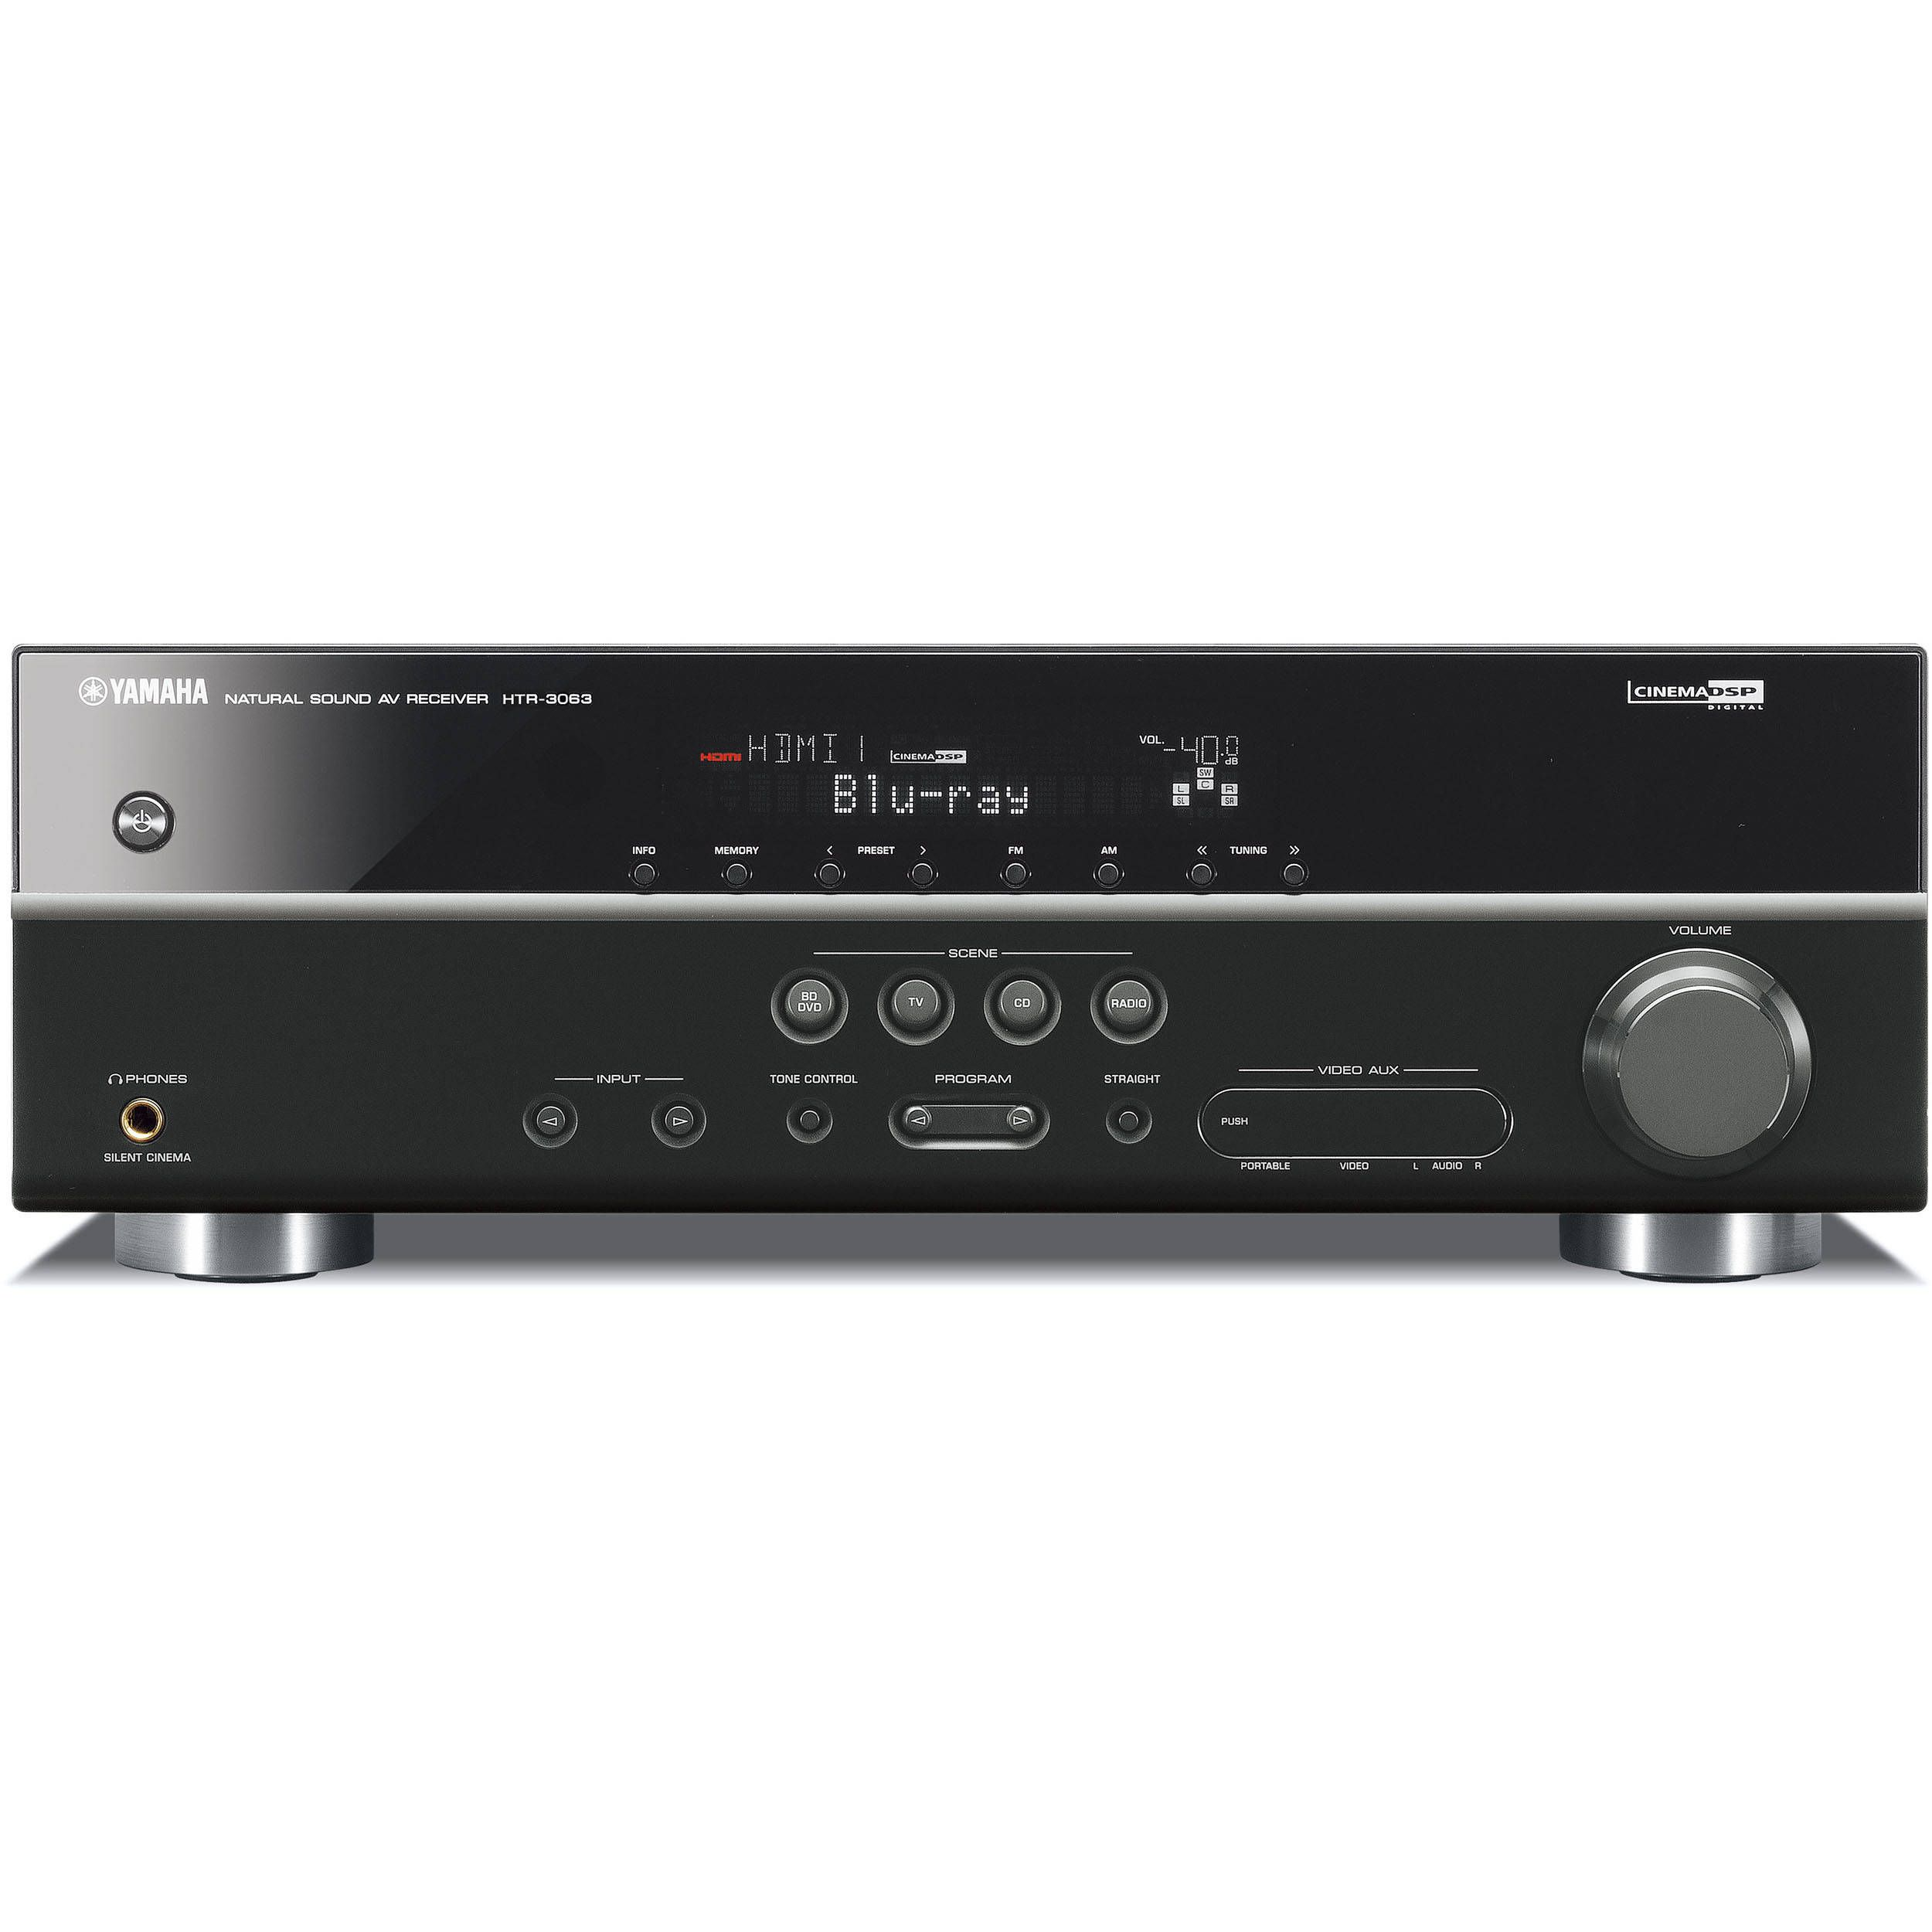 Home Receivers with Onkyo Brand